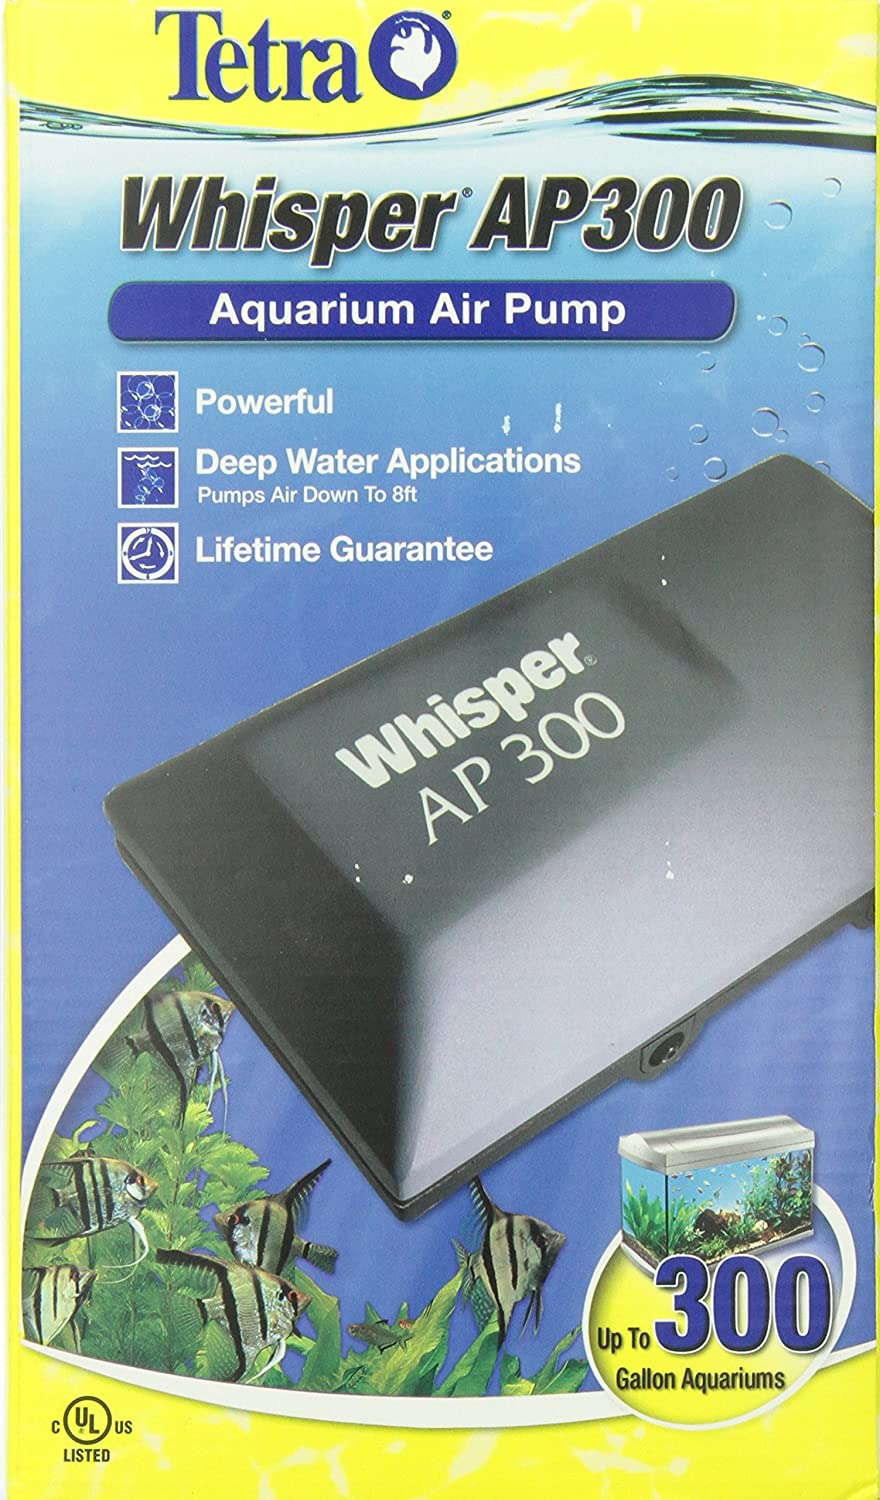 91Zm5Fak 4L._SL1500_ amazon com tetra 26075 whisper aquarium air pump ap300, up to  at cos-gaming.co